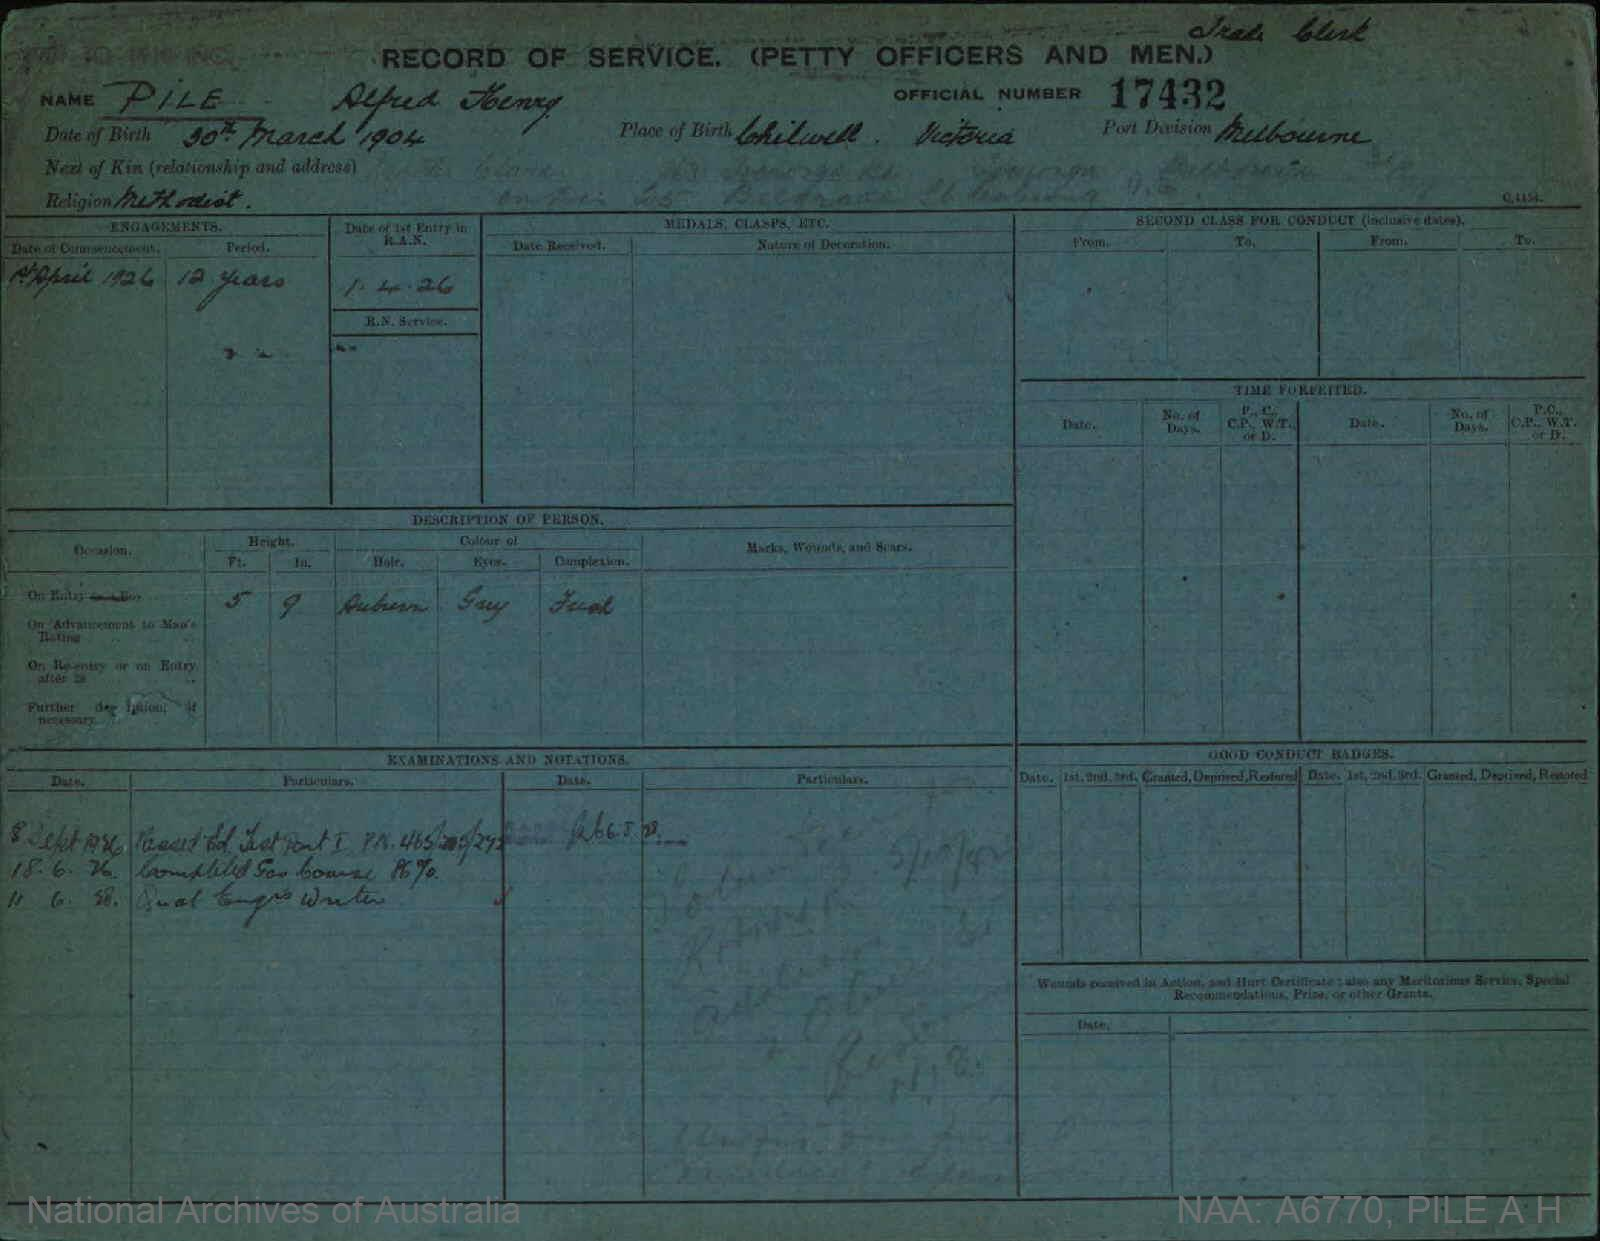 PILE ALFRED HENRY : Service Number - 17432 : Date of birth - 30 Mar 1904 : Place of birth - CHILWELL VIC : Place of enlistment - MELBOURNE : Next of Kin - CLARA